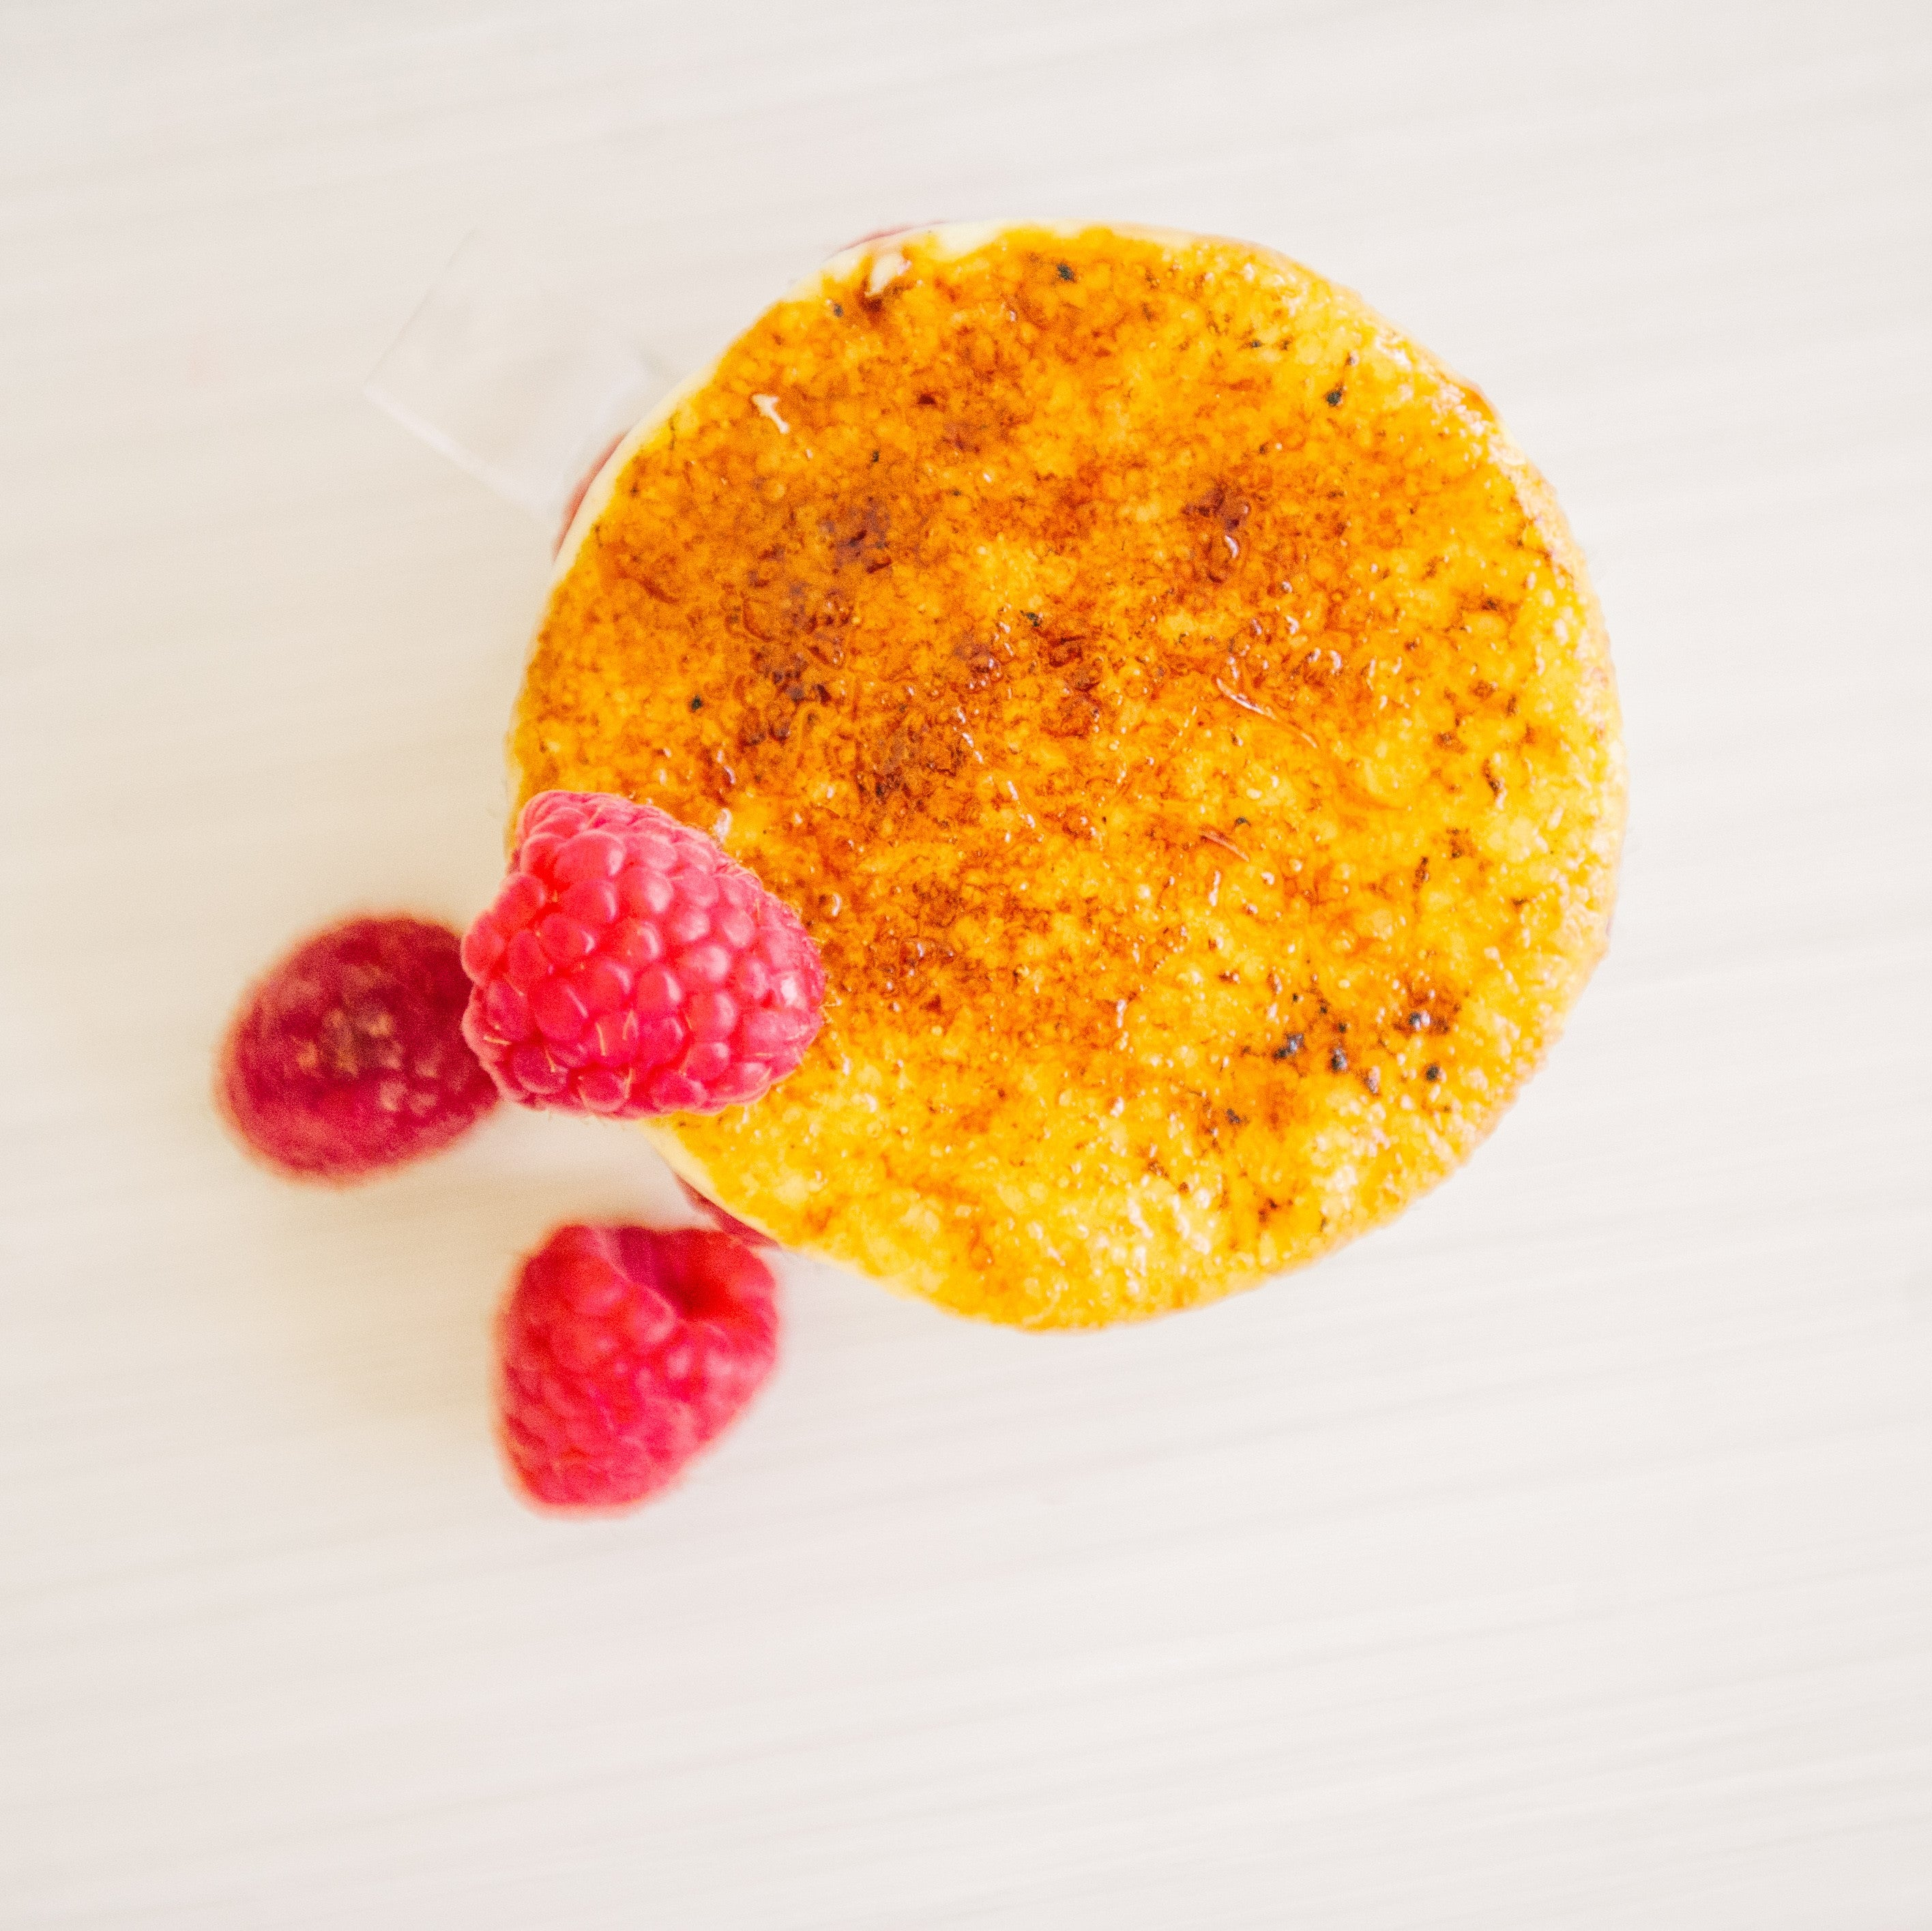 Fresh raspberries and rhubarb with creme brulee for this September feature at Yann Haute Patisserie in Calgary